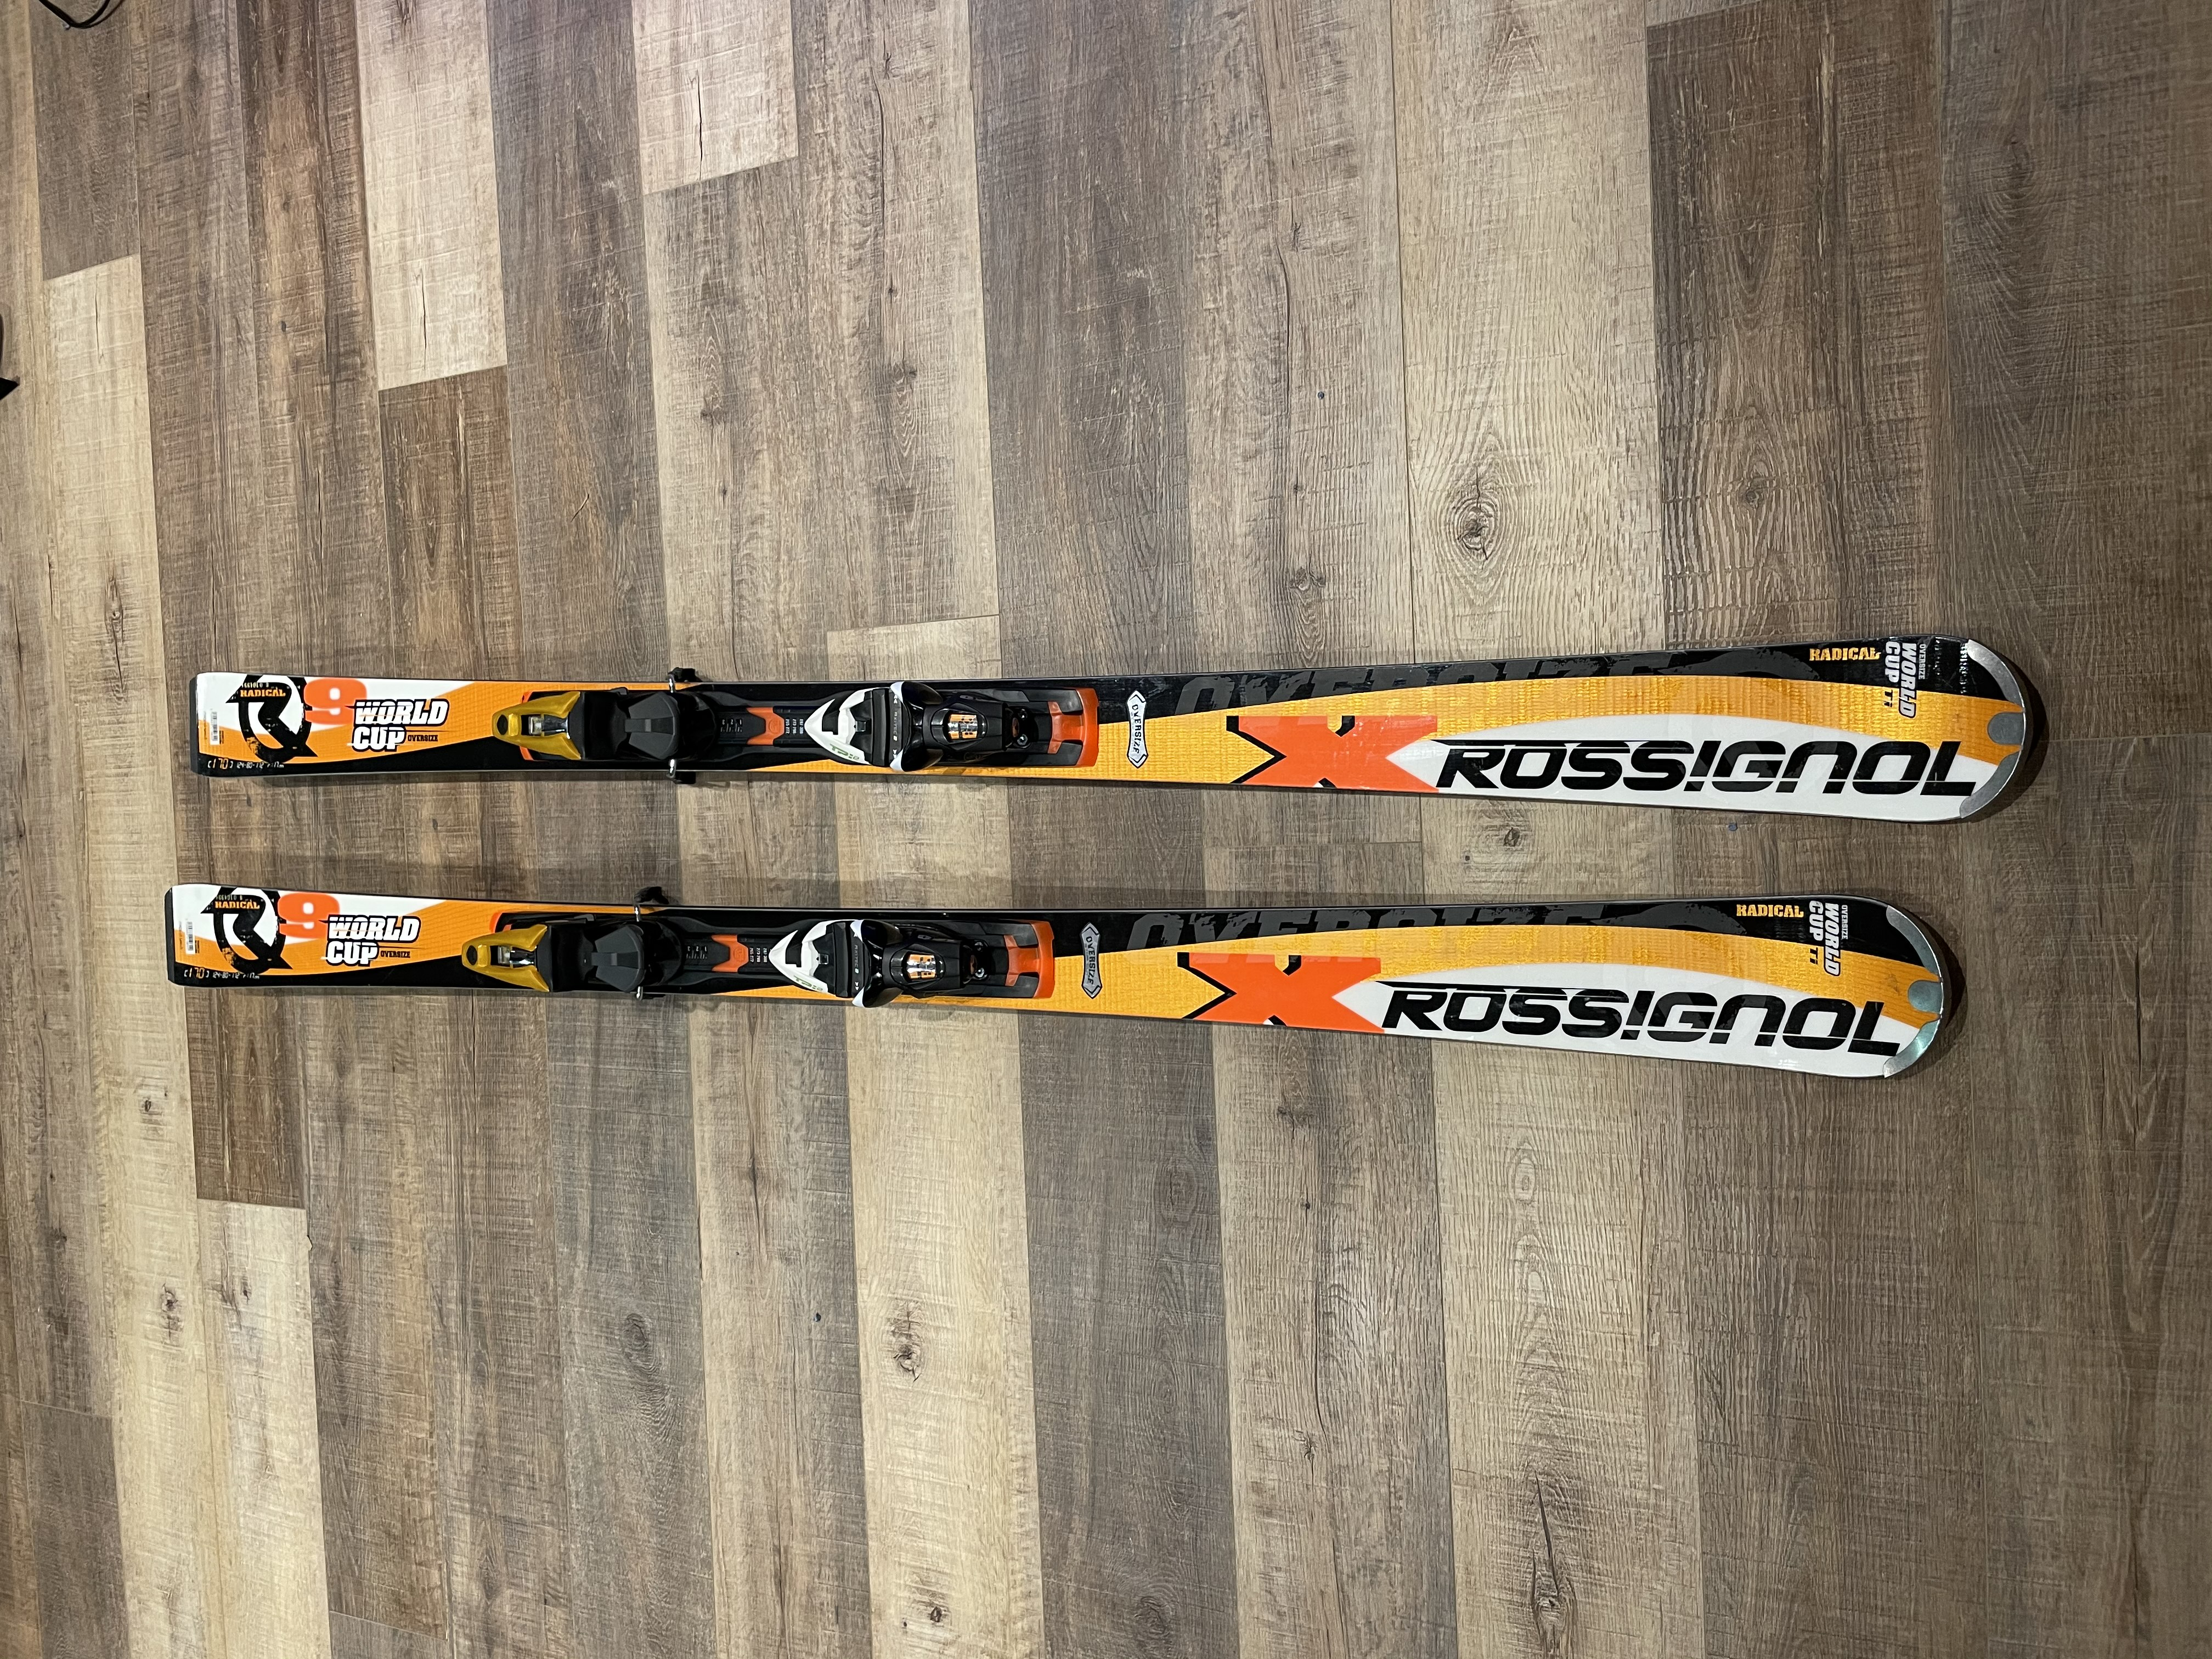 Rossignol 9X World Cup TI Oversize GS Skis